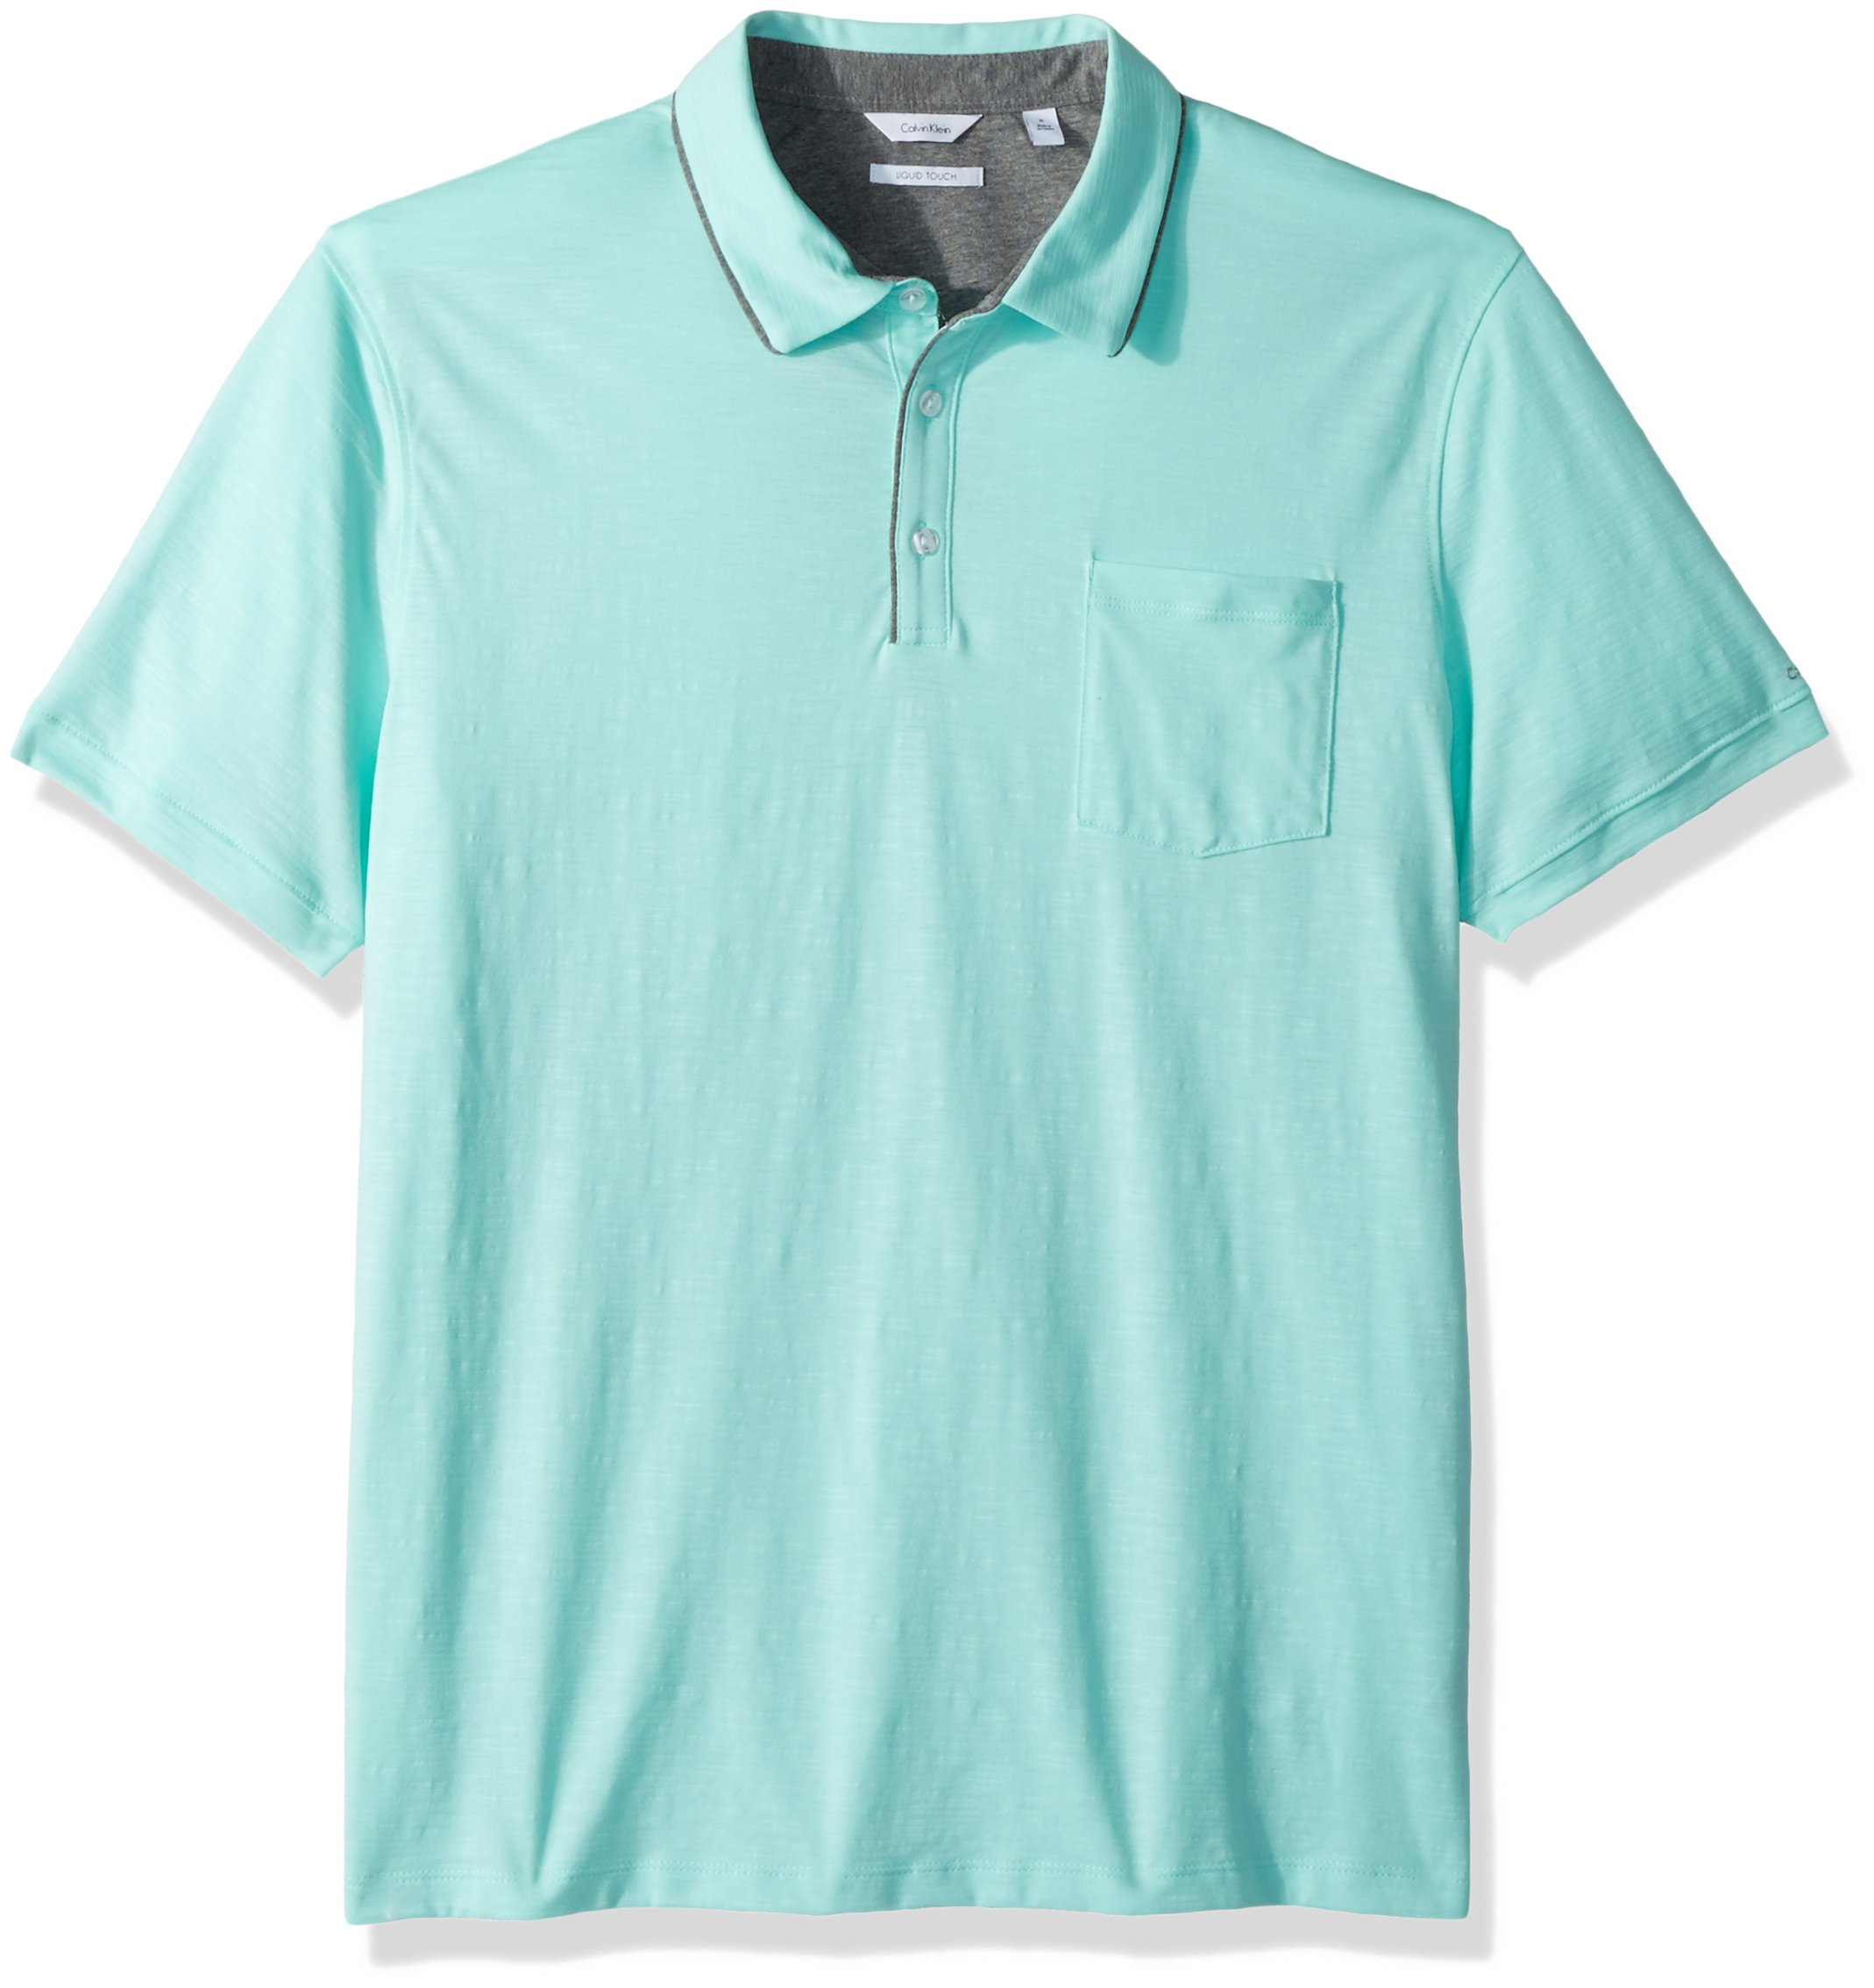 Calvin Klein Men's Short Sleeve Cotton Fashion Polo Shirt, Beach Glass, XL by Calvin Klein